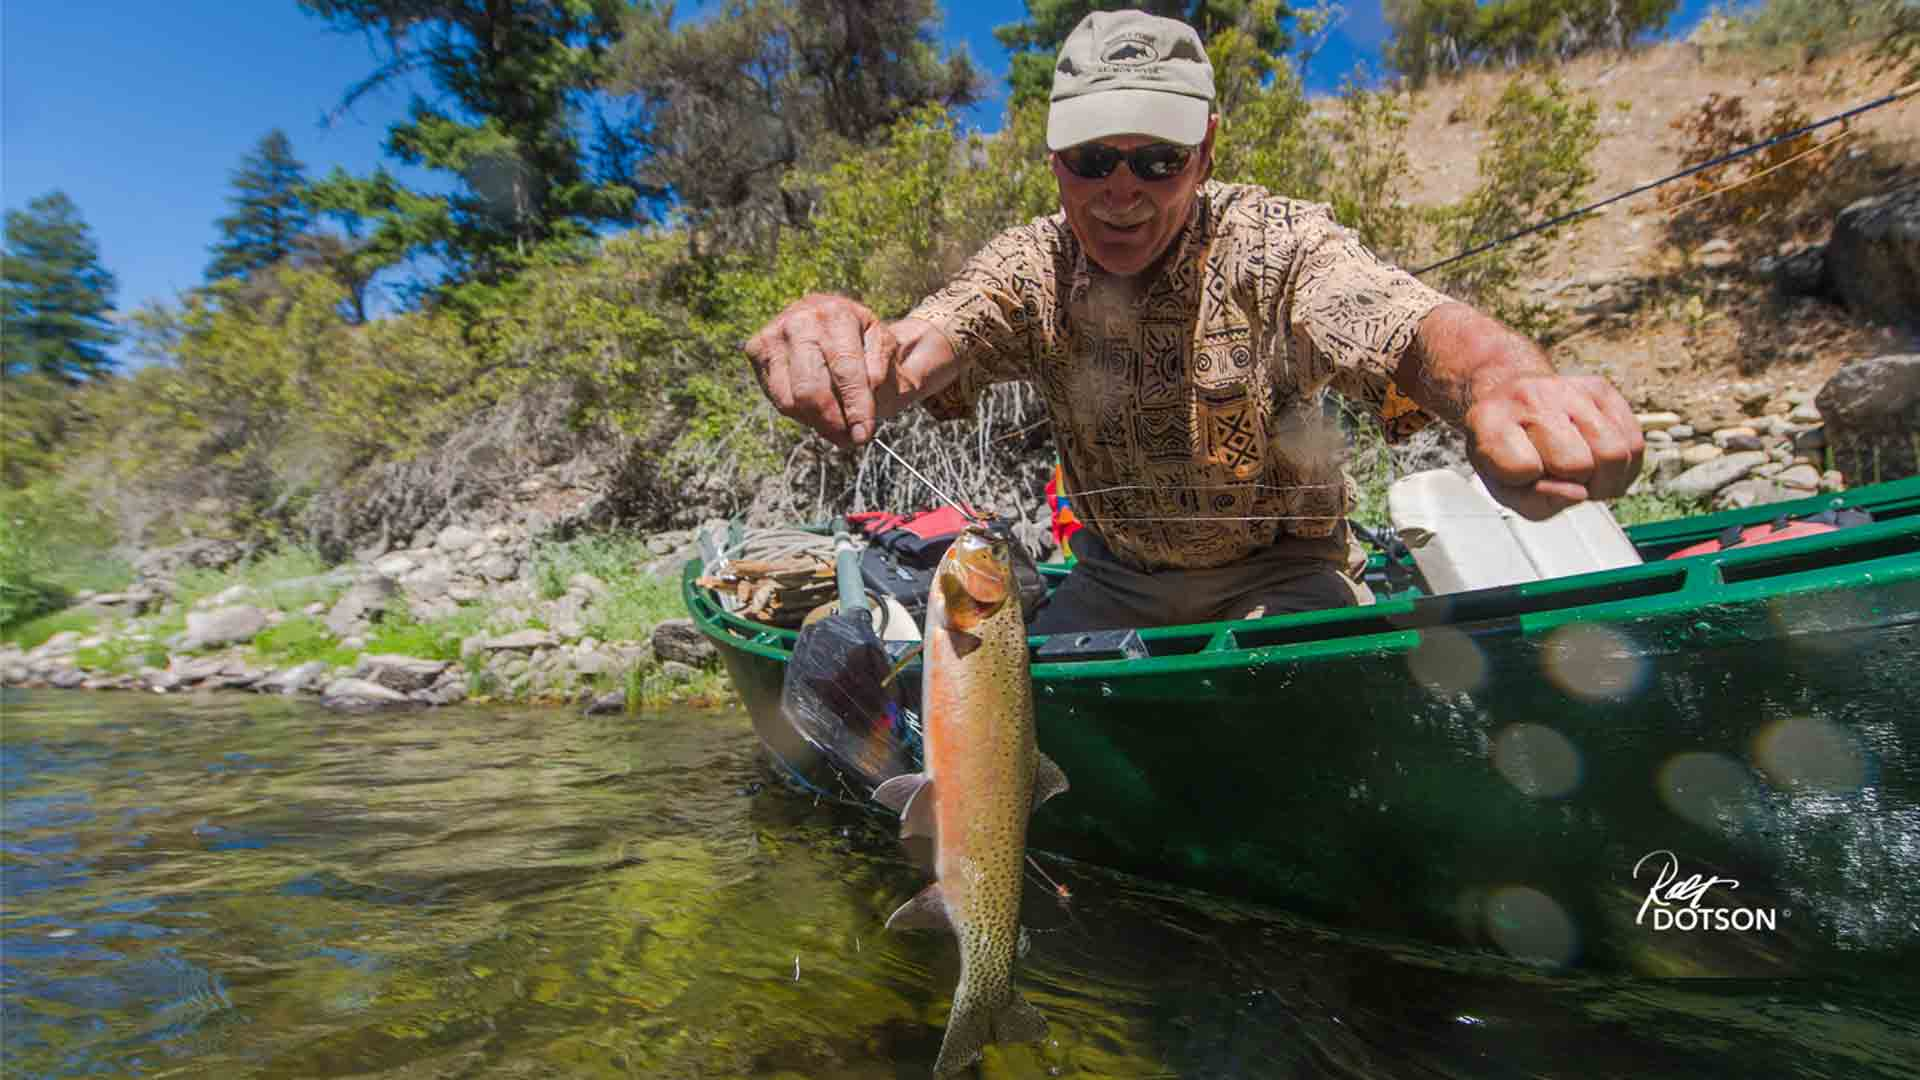 Angler leaning over side of Drift Boat with Cutthroat